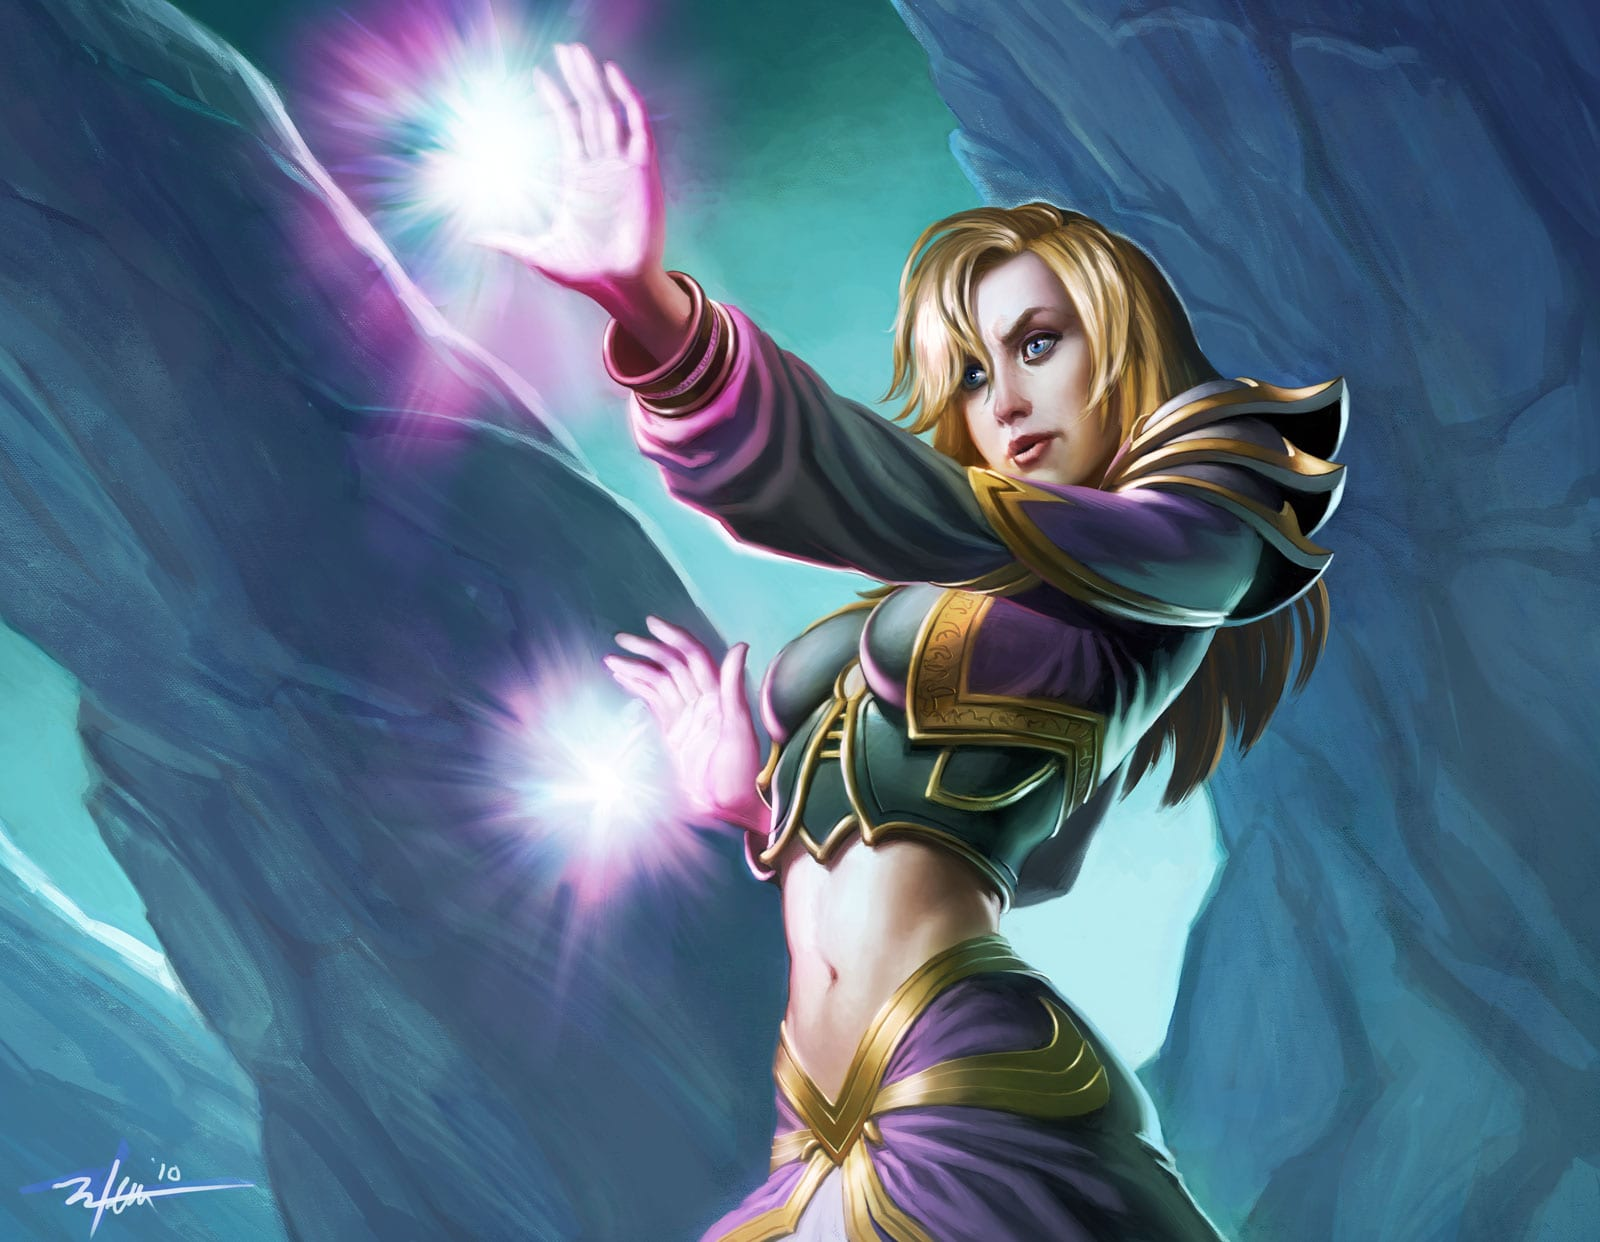 Hearthstone: Jaina Proudmoore Download